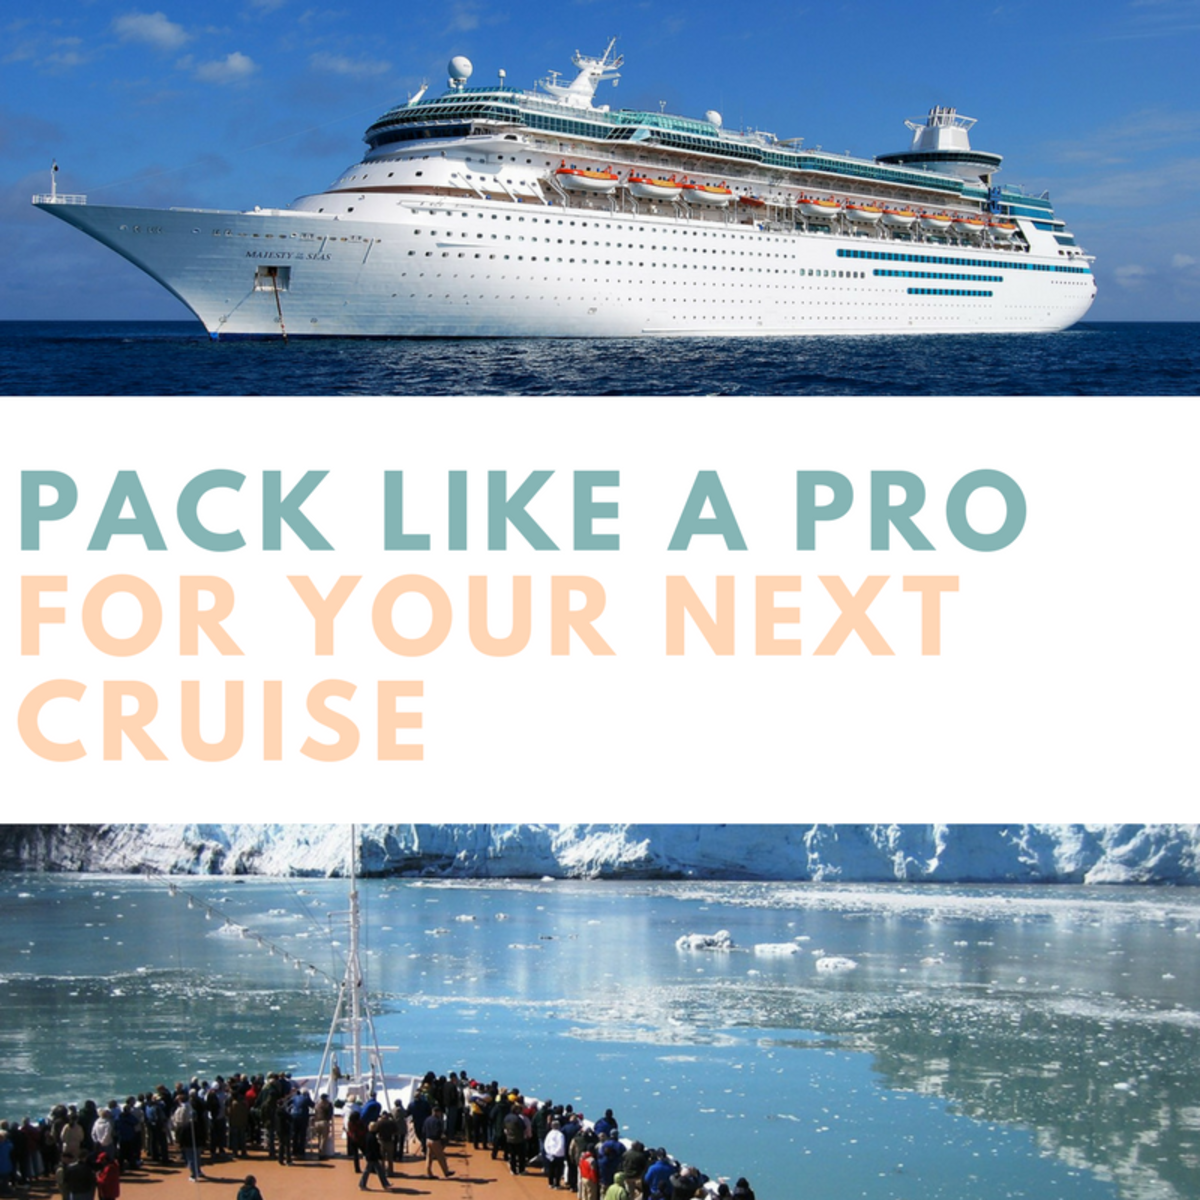 Pack Like a Pro for Your Next Cruise